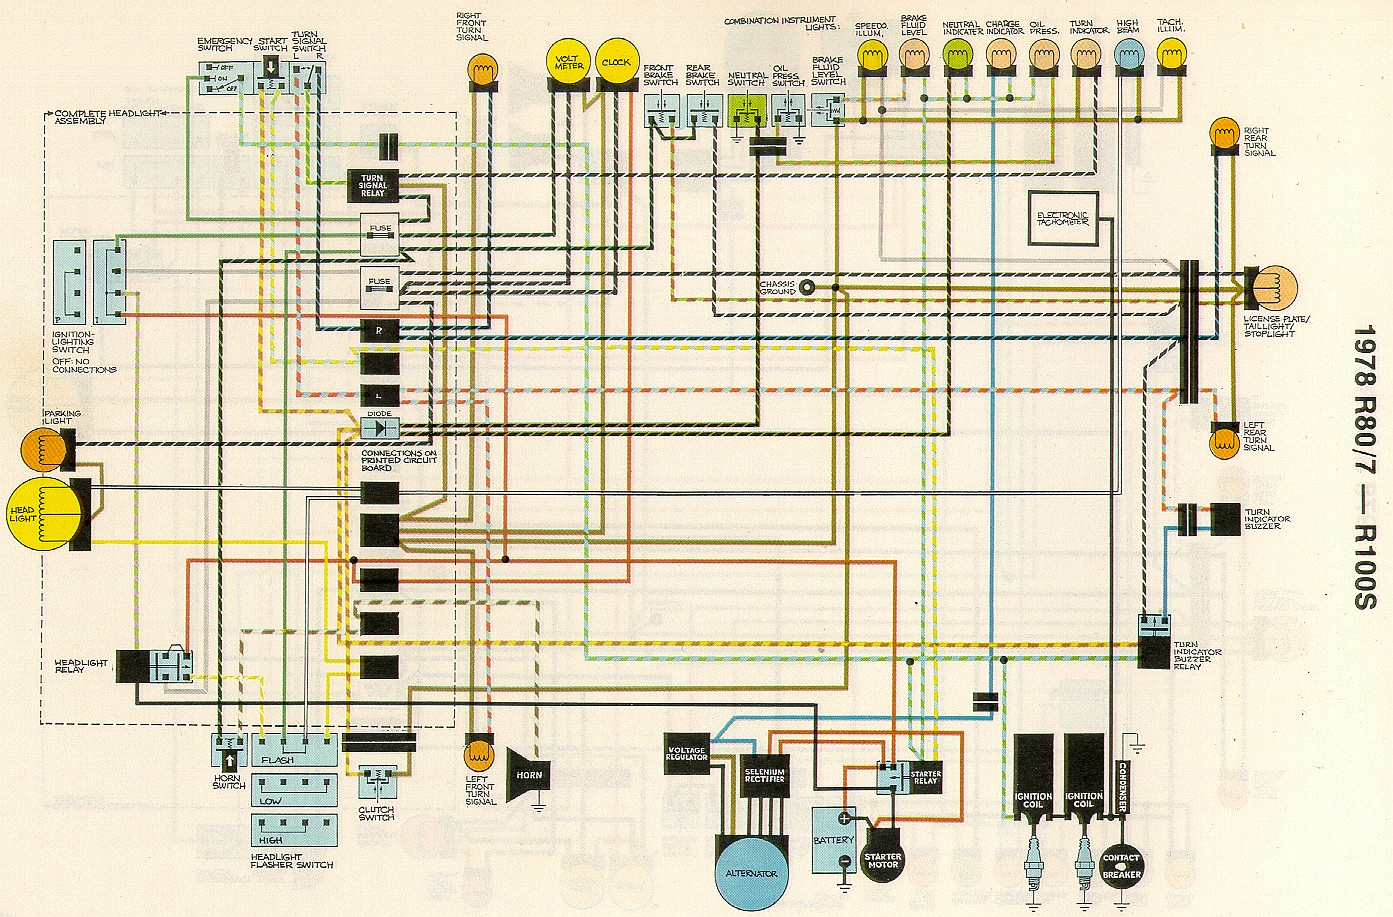 78 5 united articles wiring diagrams 7 wire diagram at mifinder.co